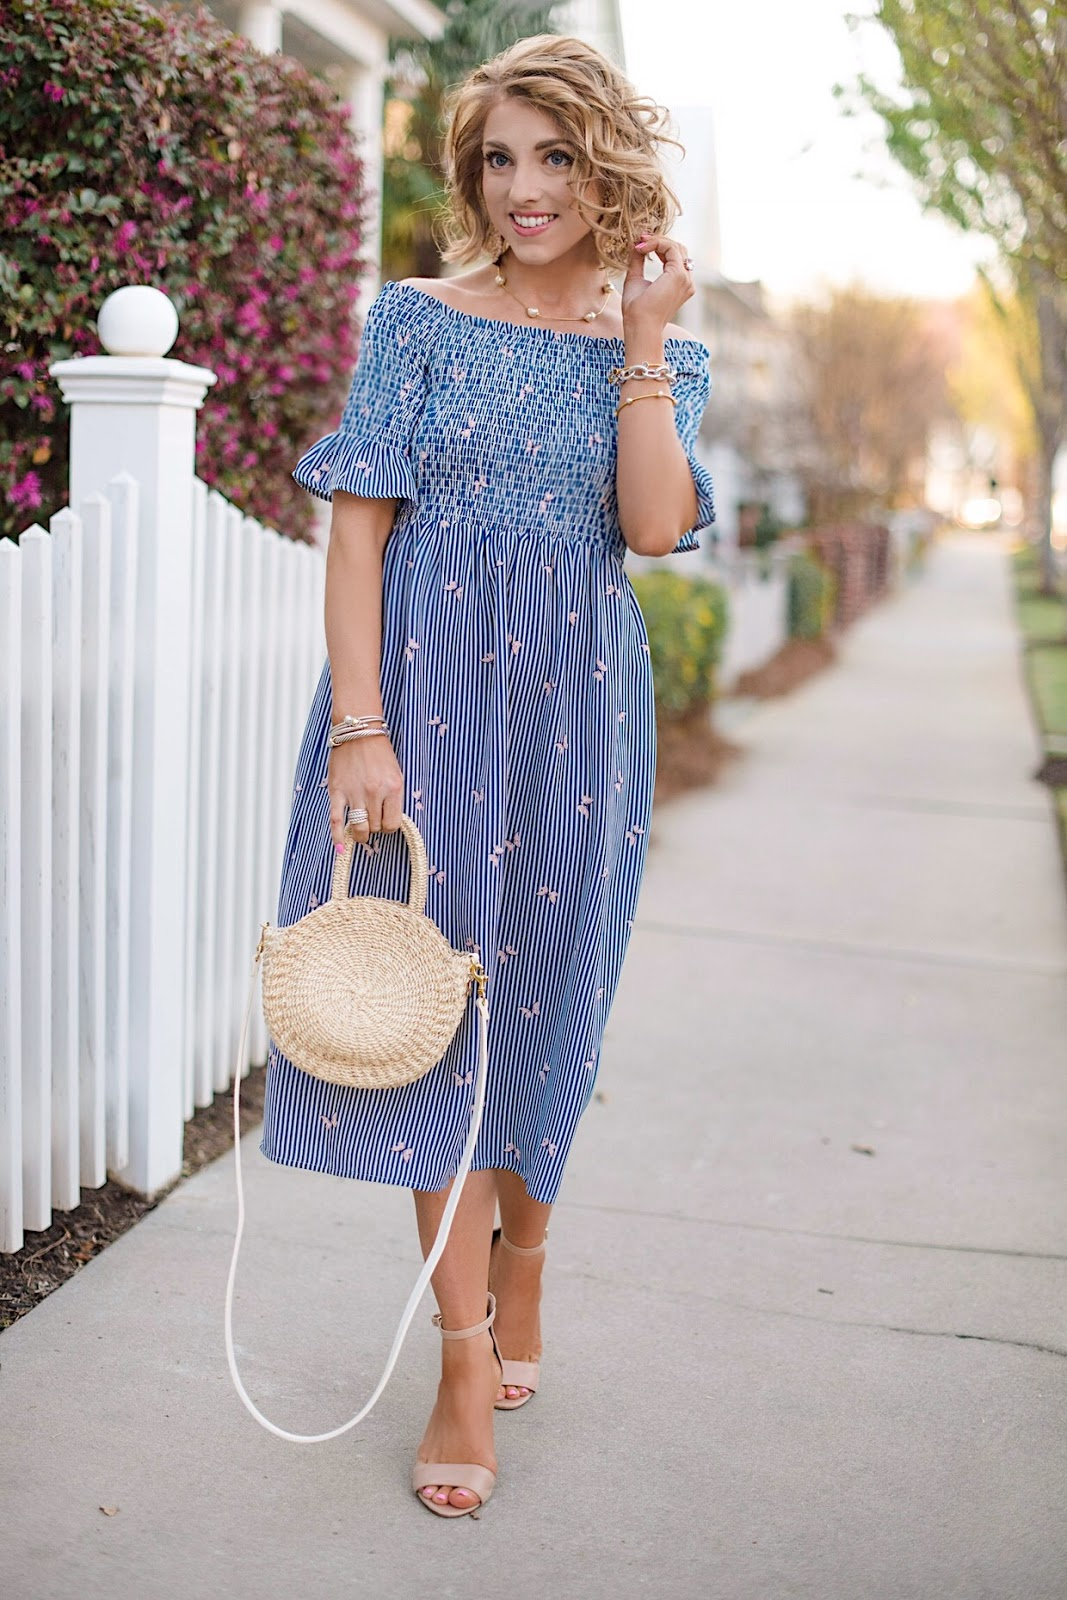 Butterfly Print OTS Midi Dress (Under $60) - Something Delightful Blog